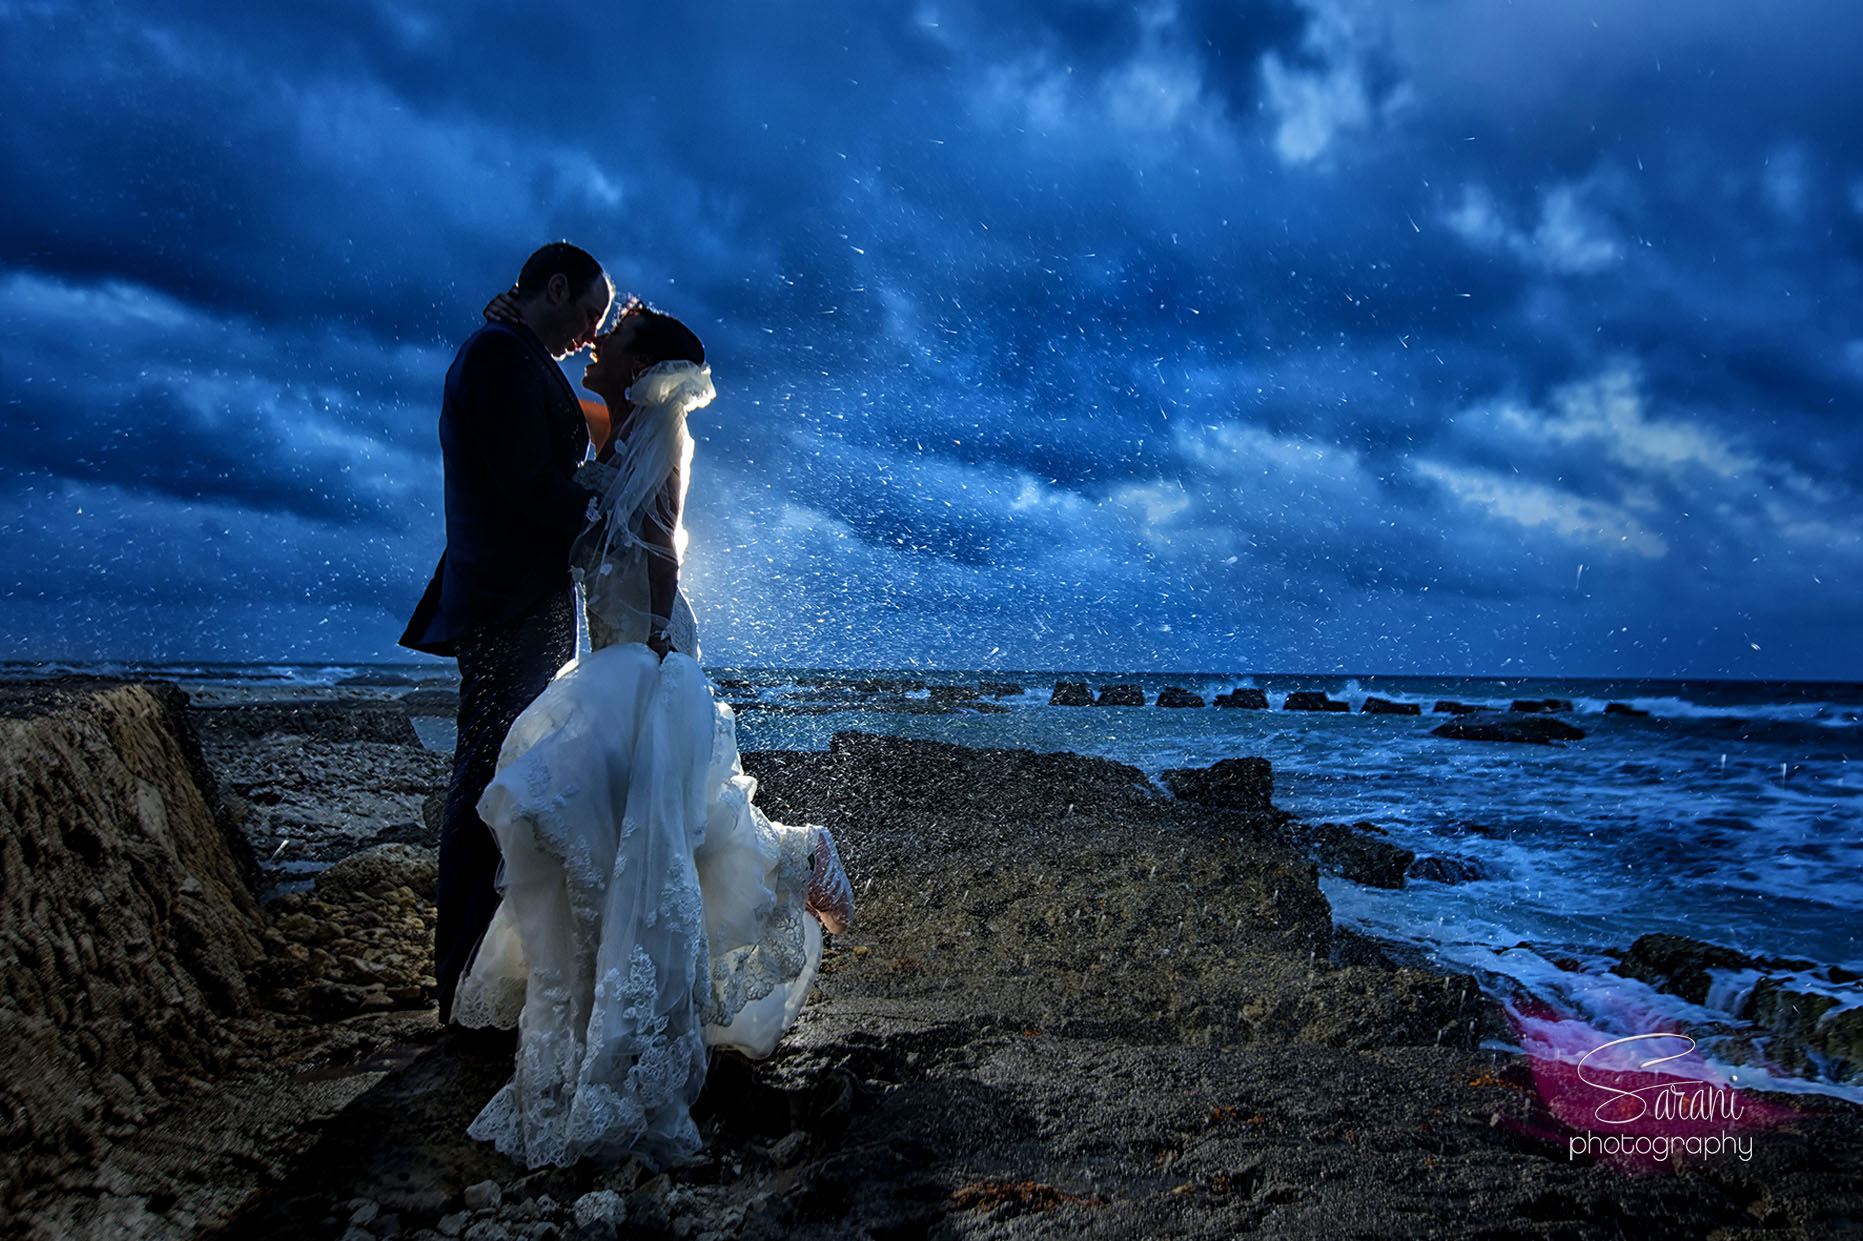 Wedding Photography at El Dorado Royale